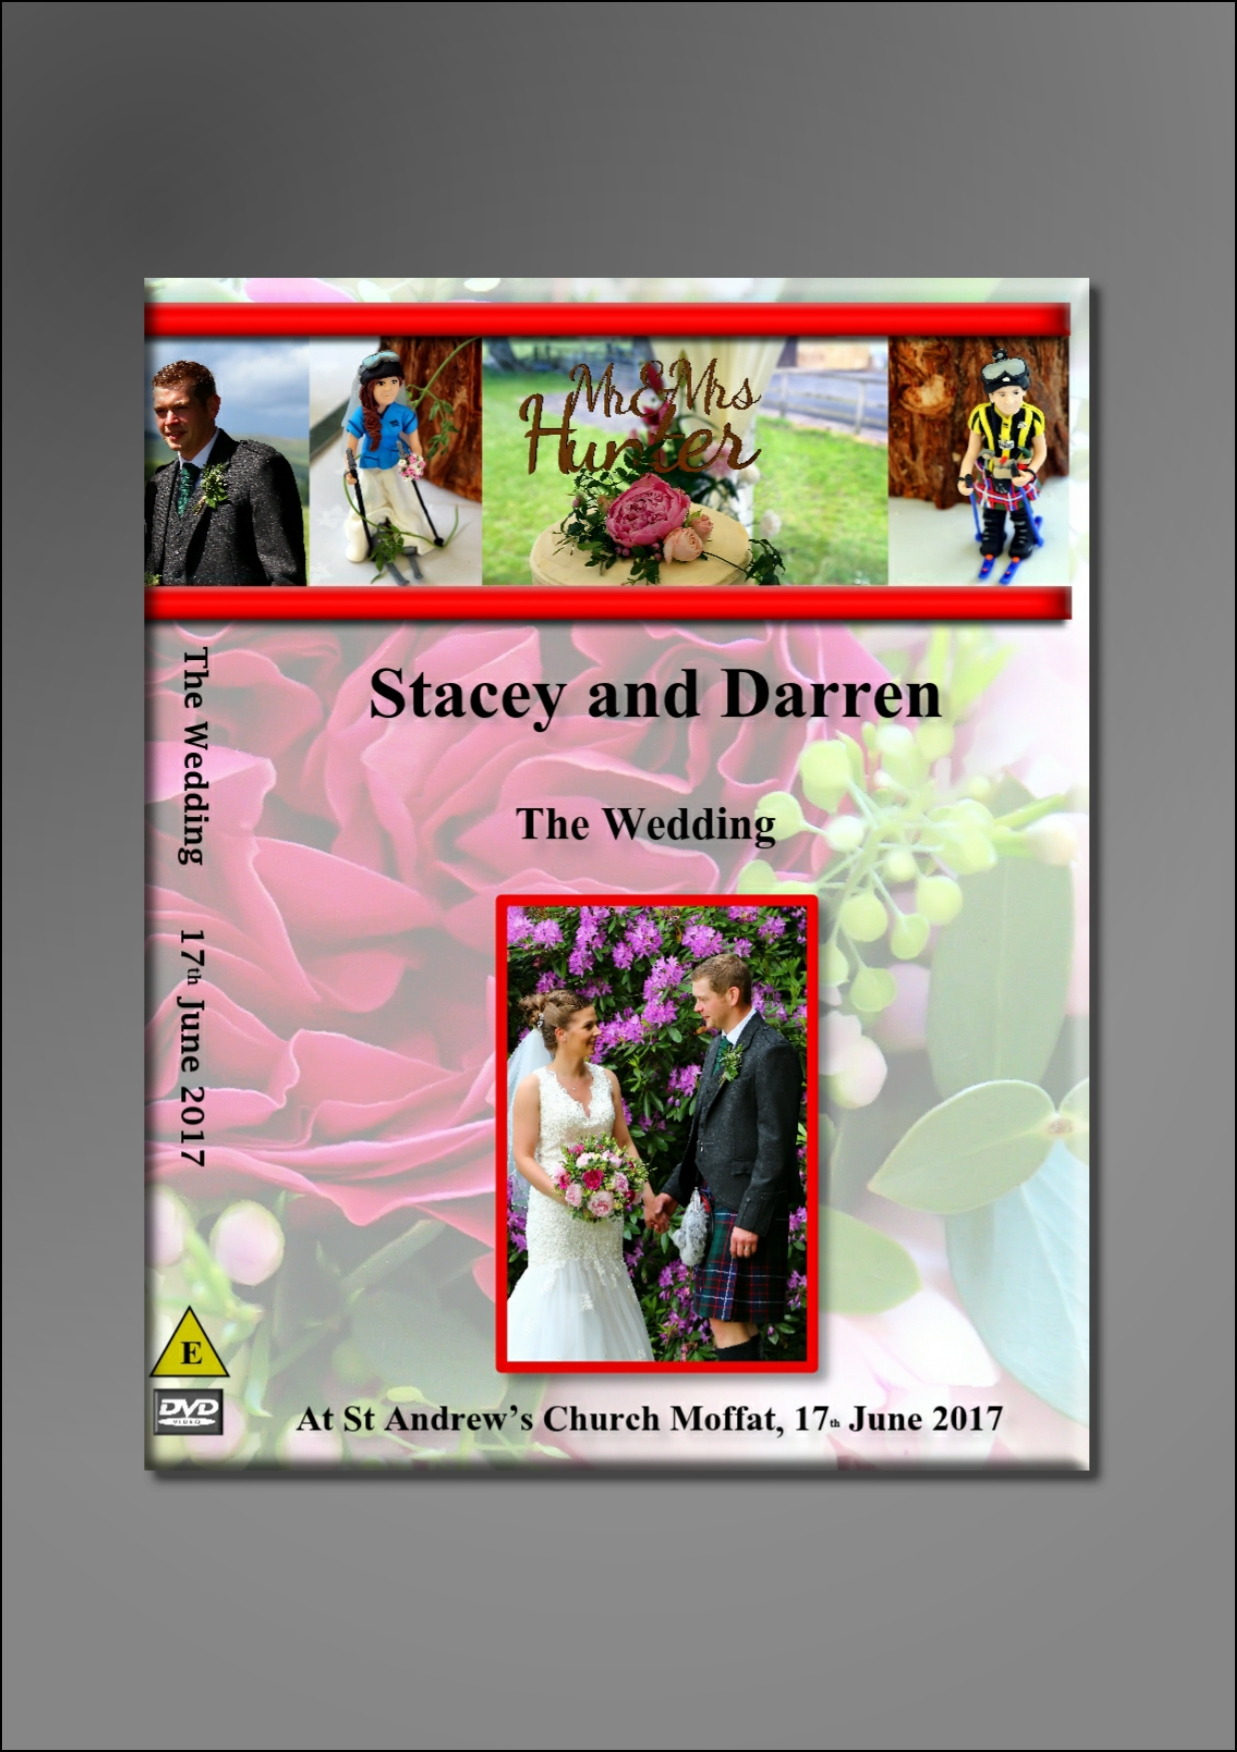 Tracey and Darren's DVD